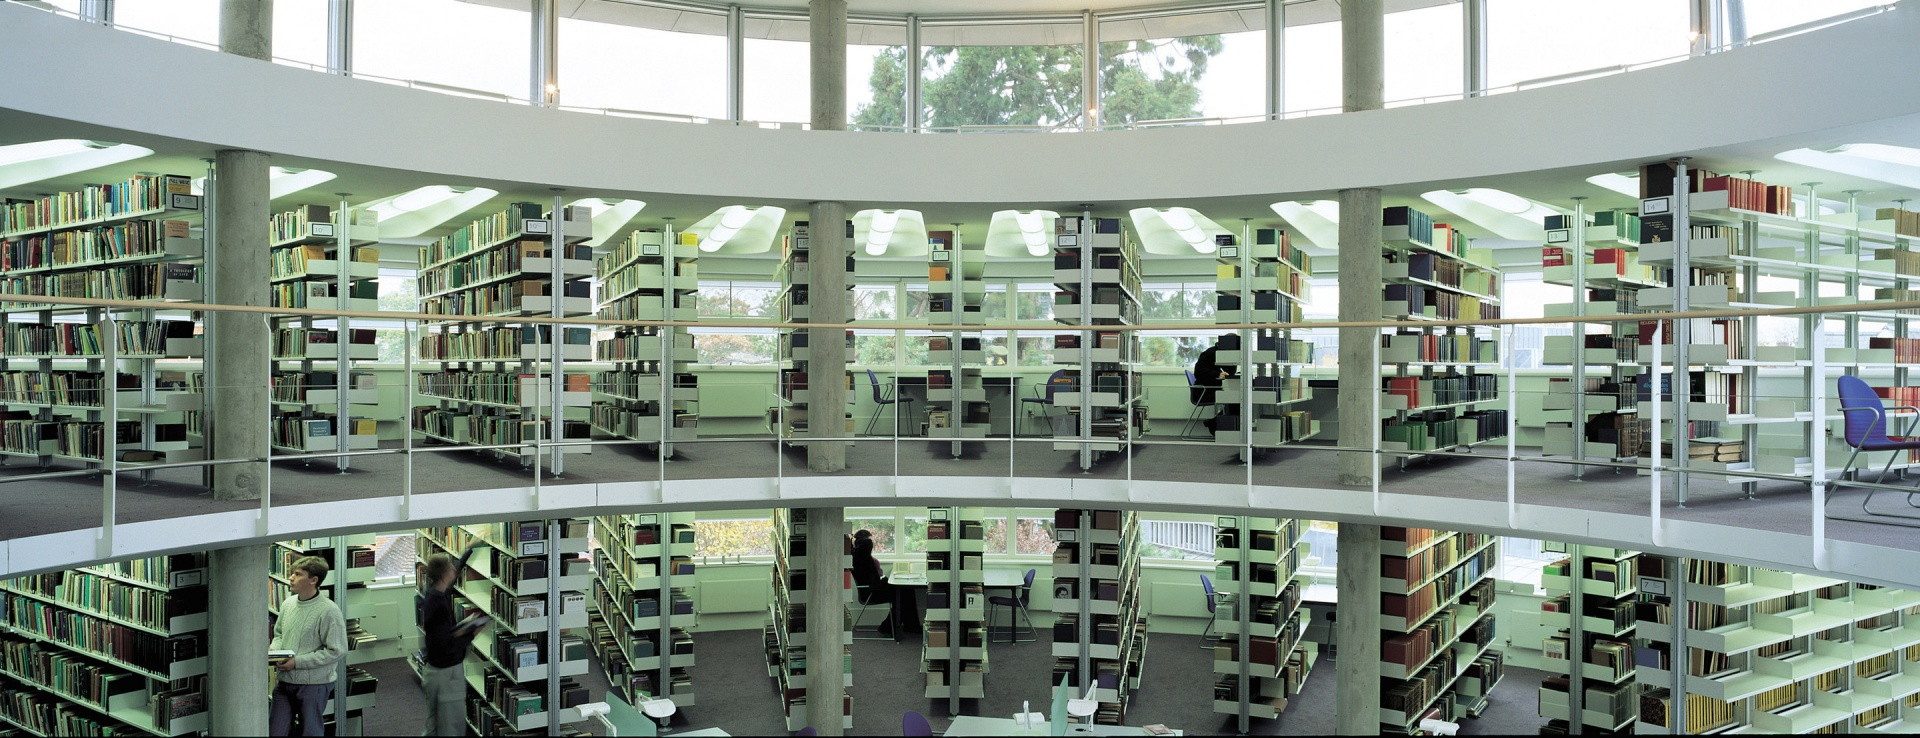 A far-sighted university and a prescient architect achieved a fine storage solution for the works of divinity